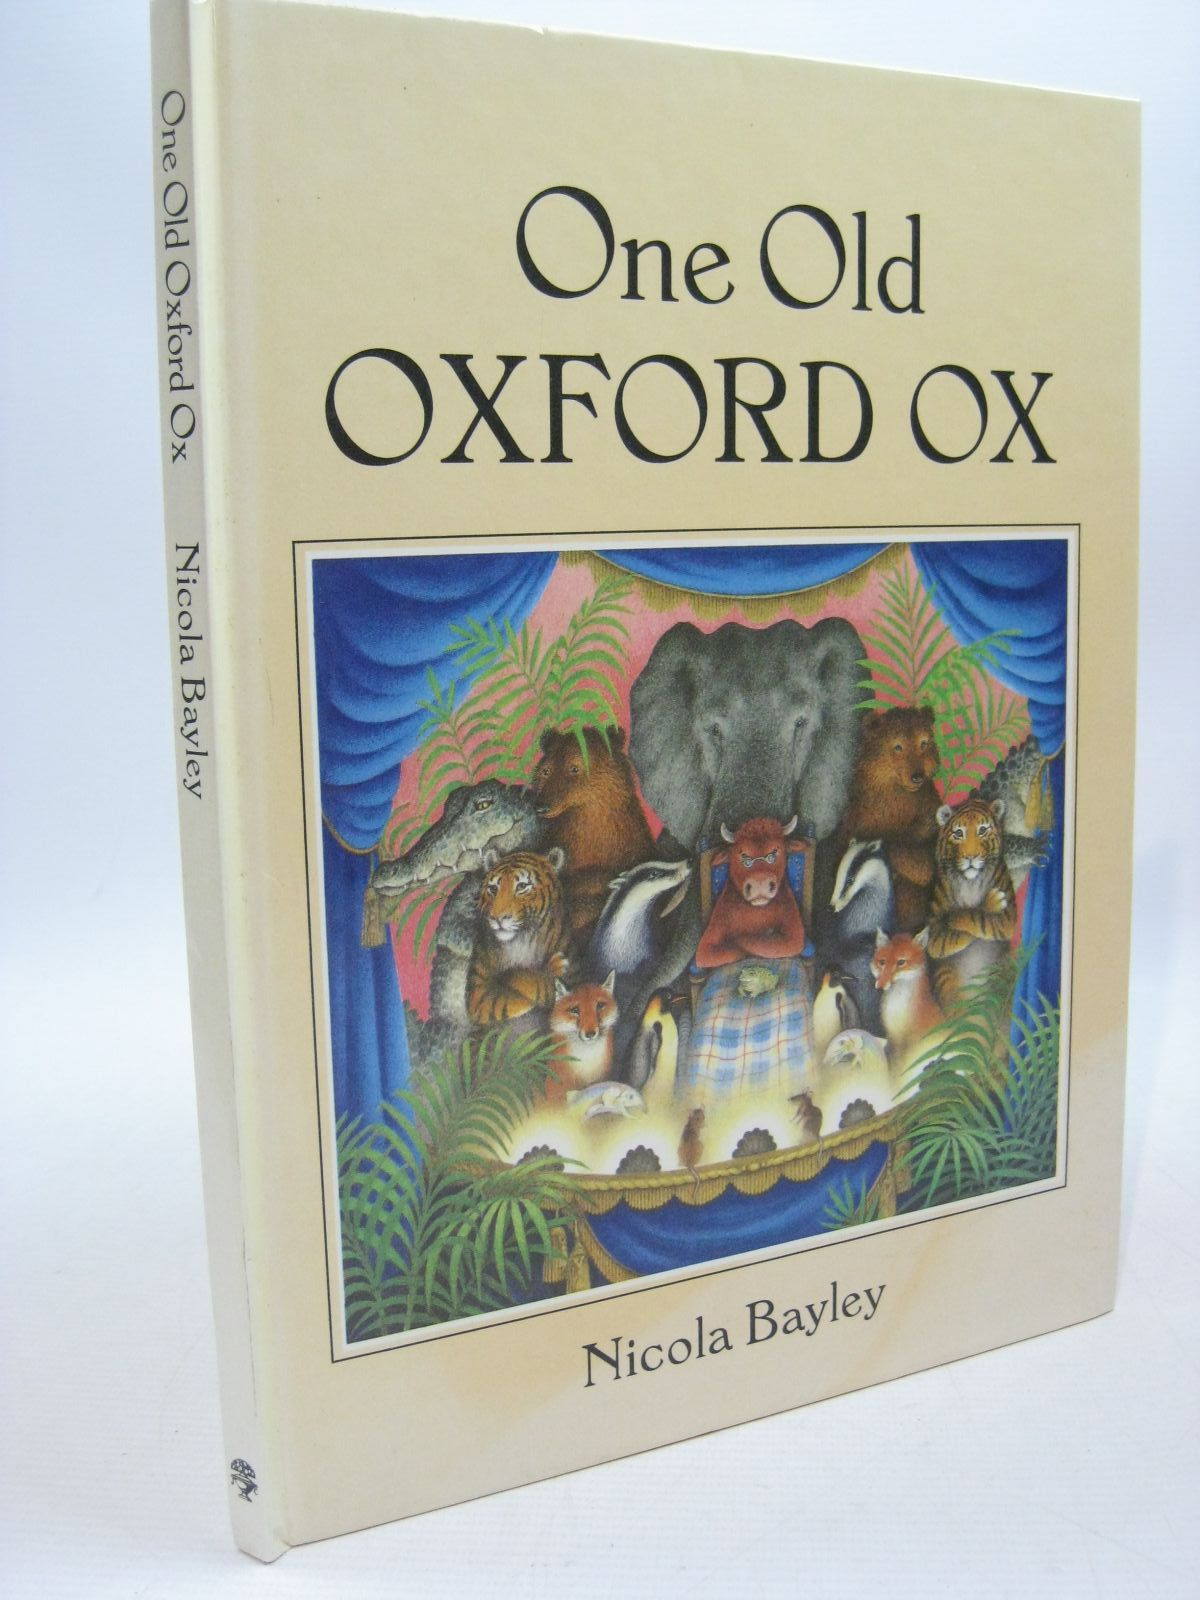 Photo of ONE OLD OXFORD OX written by Bayley, Nicola illustrated by Bayley, Nicola published by Jonathan Cape (STOCK CODE: 1504452)  for sale by Stella & Rose's Books